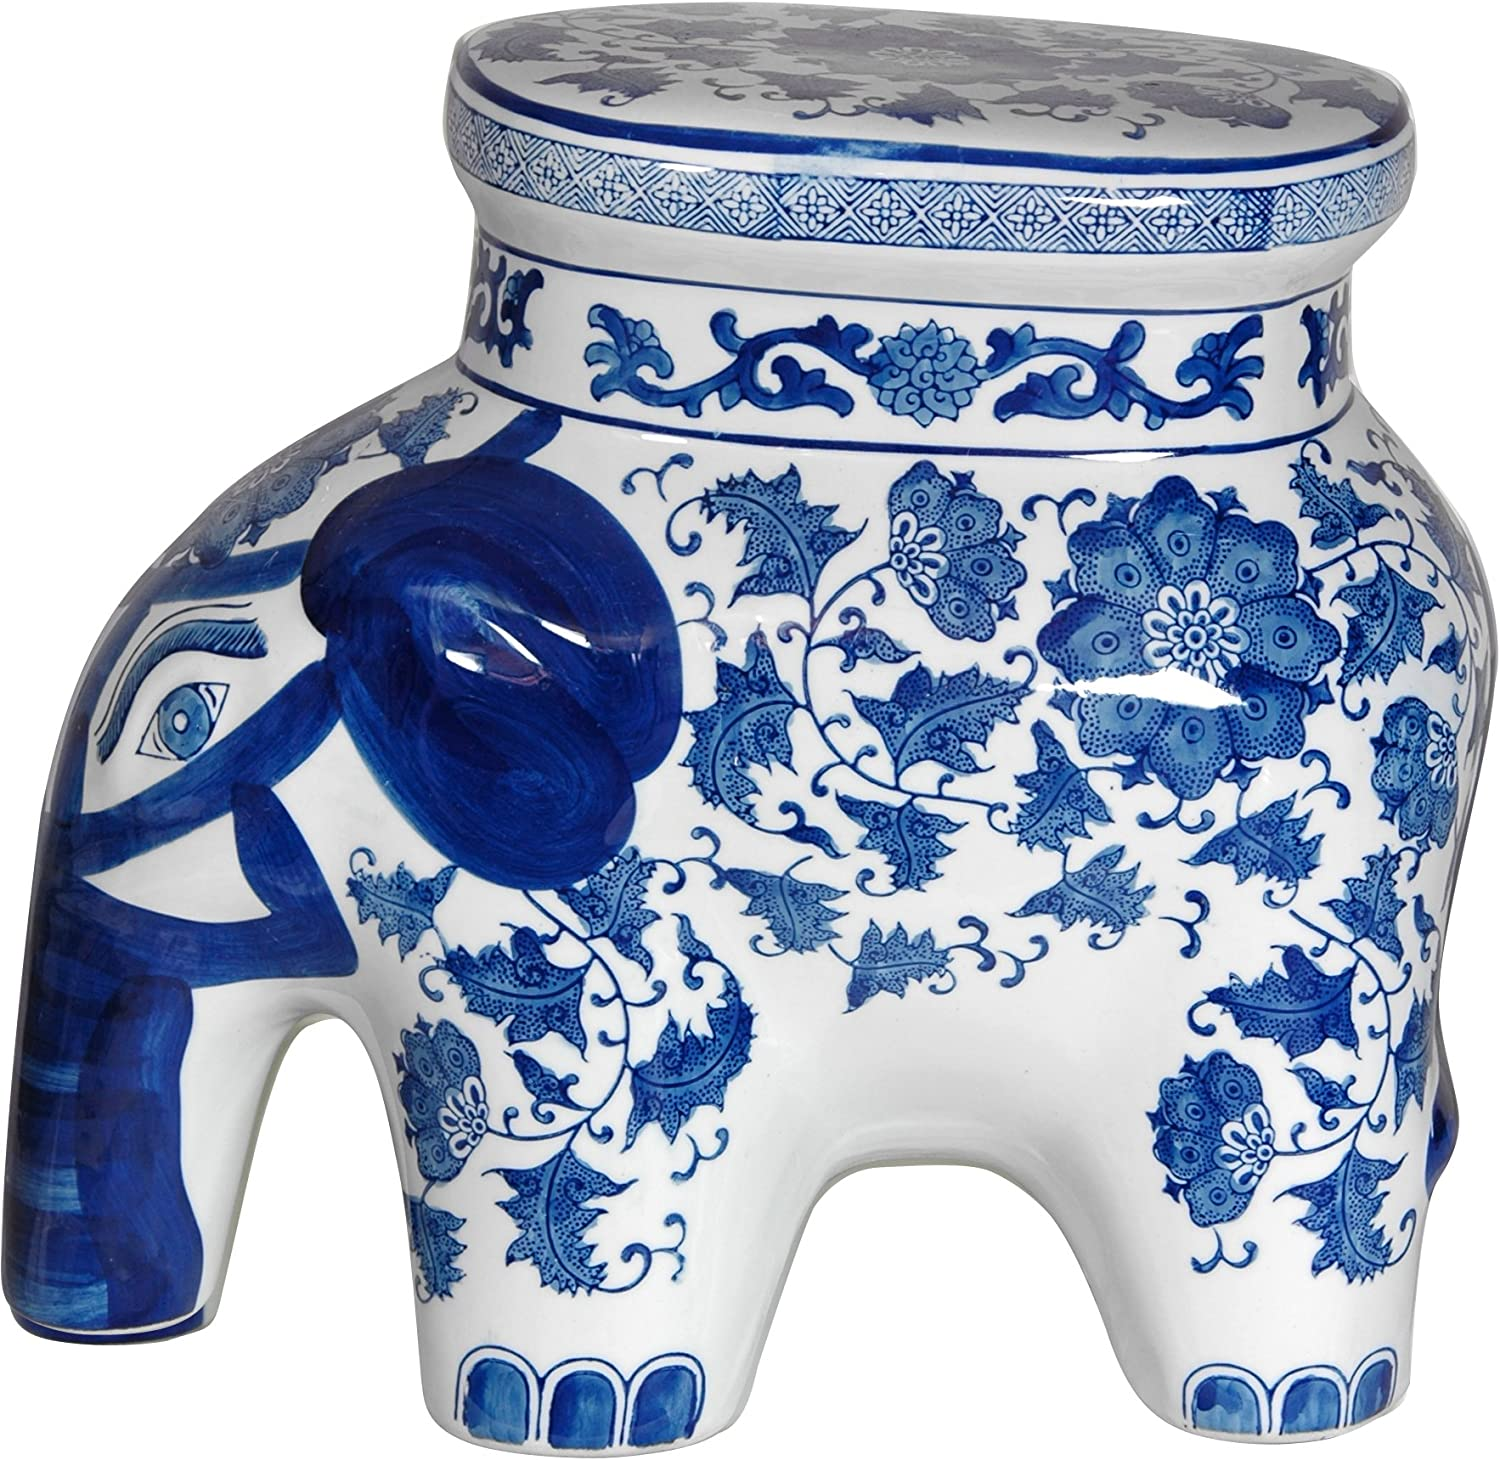 "Oriental Furniture 14"" Floral Blue & White Porcelain Elephant Stool"